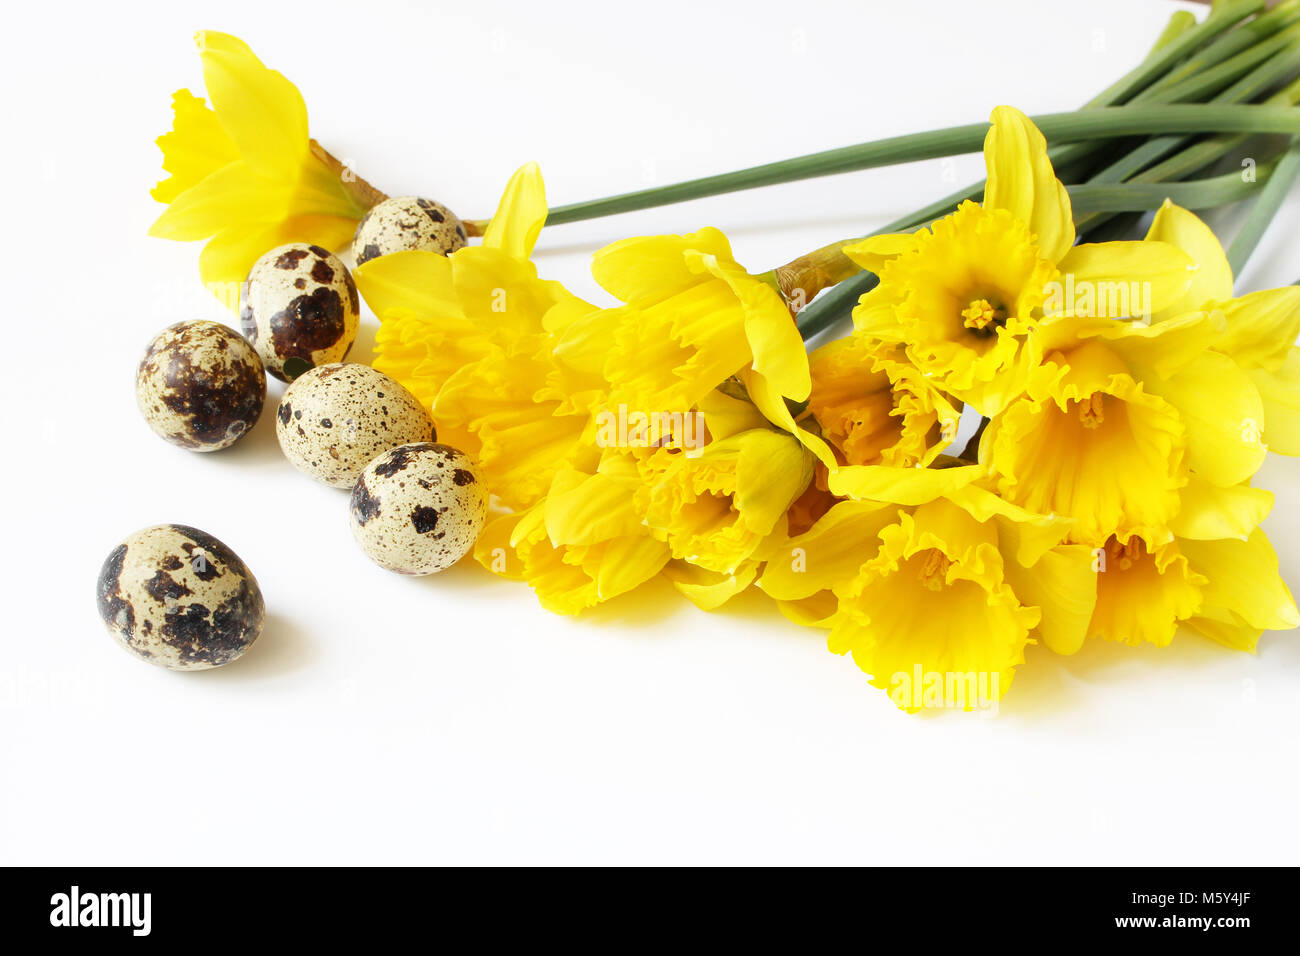 Easter, spring greeting card, invitation with quail eggs and yellow daffodils, narcissus flowers lying on white table. Feminine styled stock photo, floral composition. Stock Photo